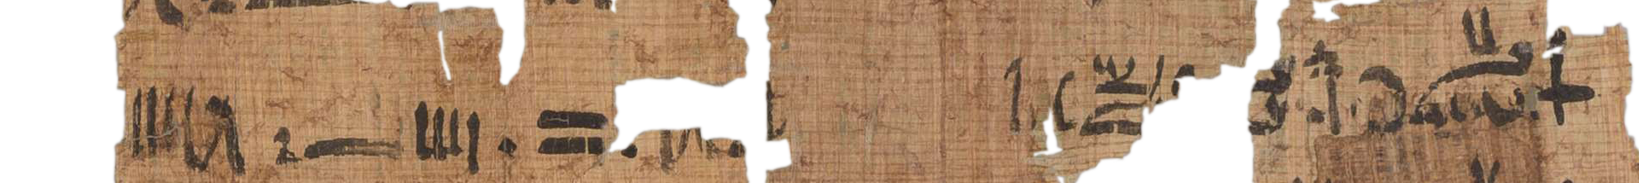 the Turin king list 4.2 (photo of the hieratic text)